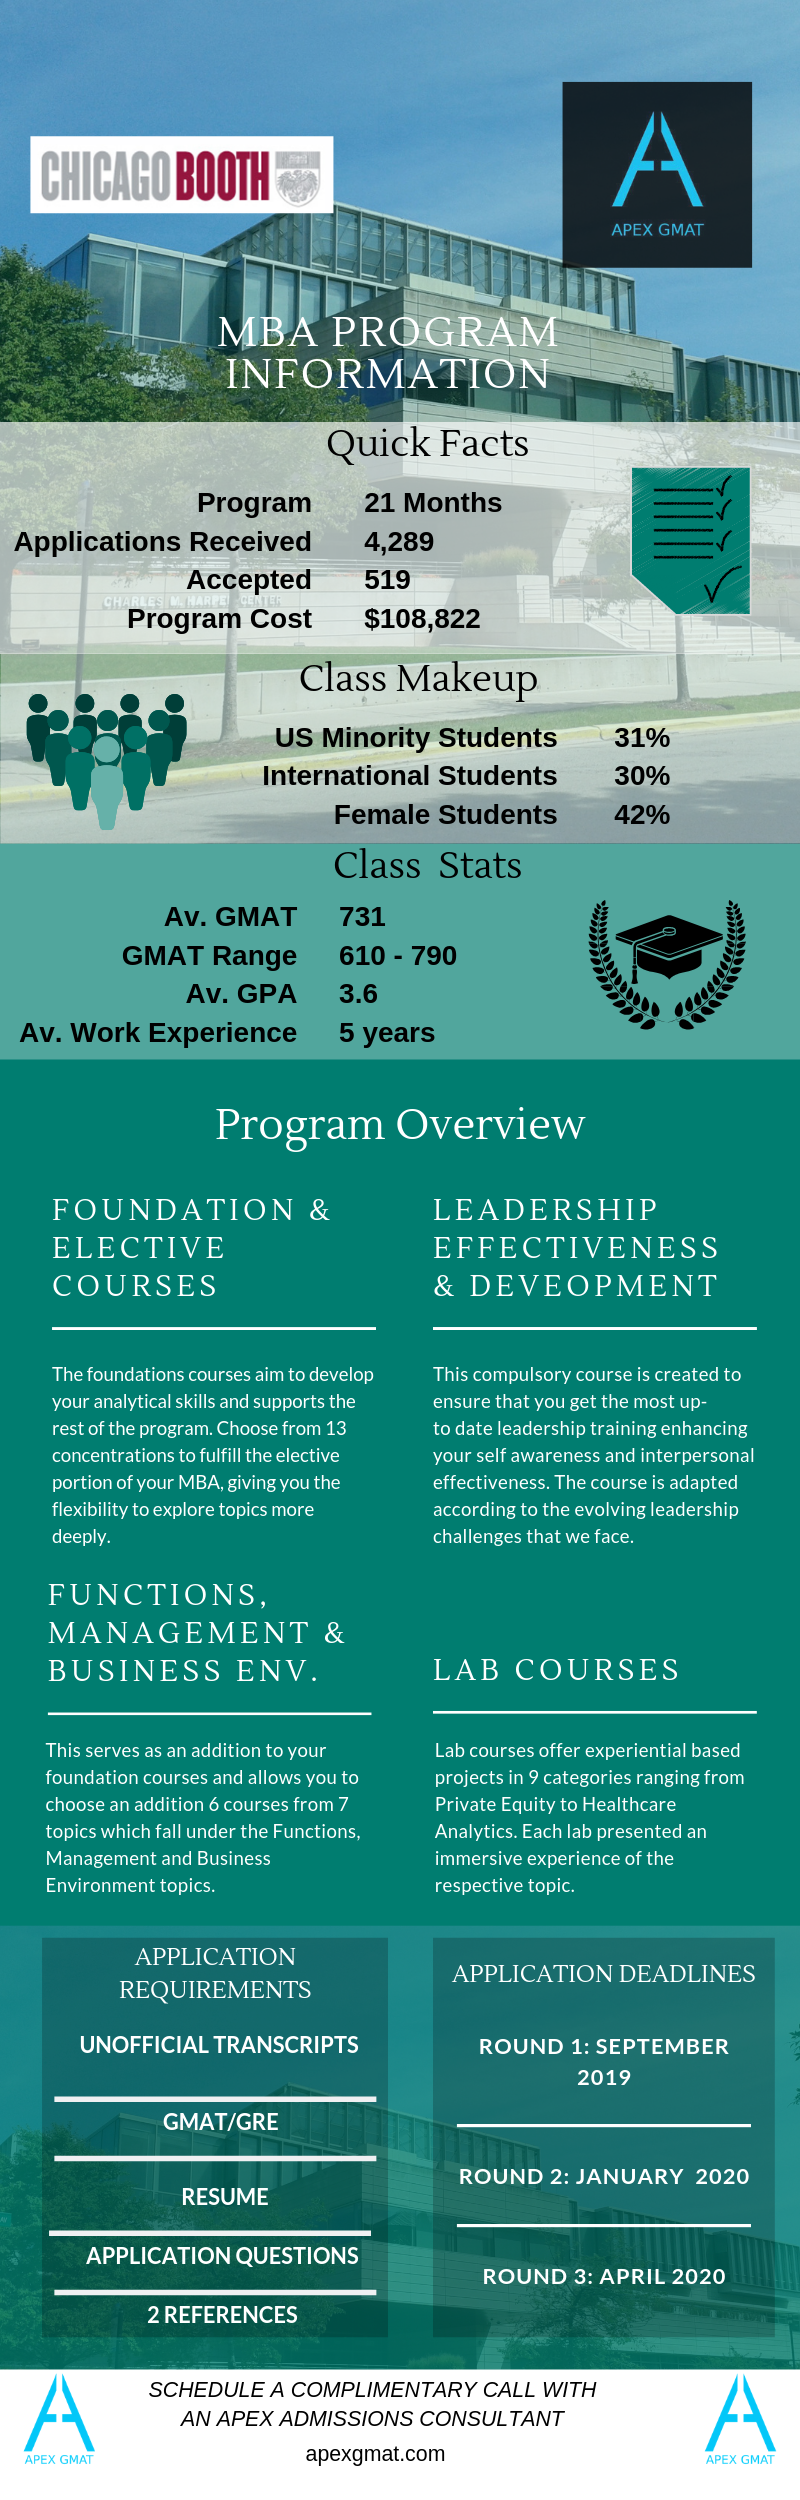 MBA program information for Chicago booth